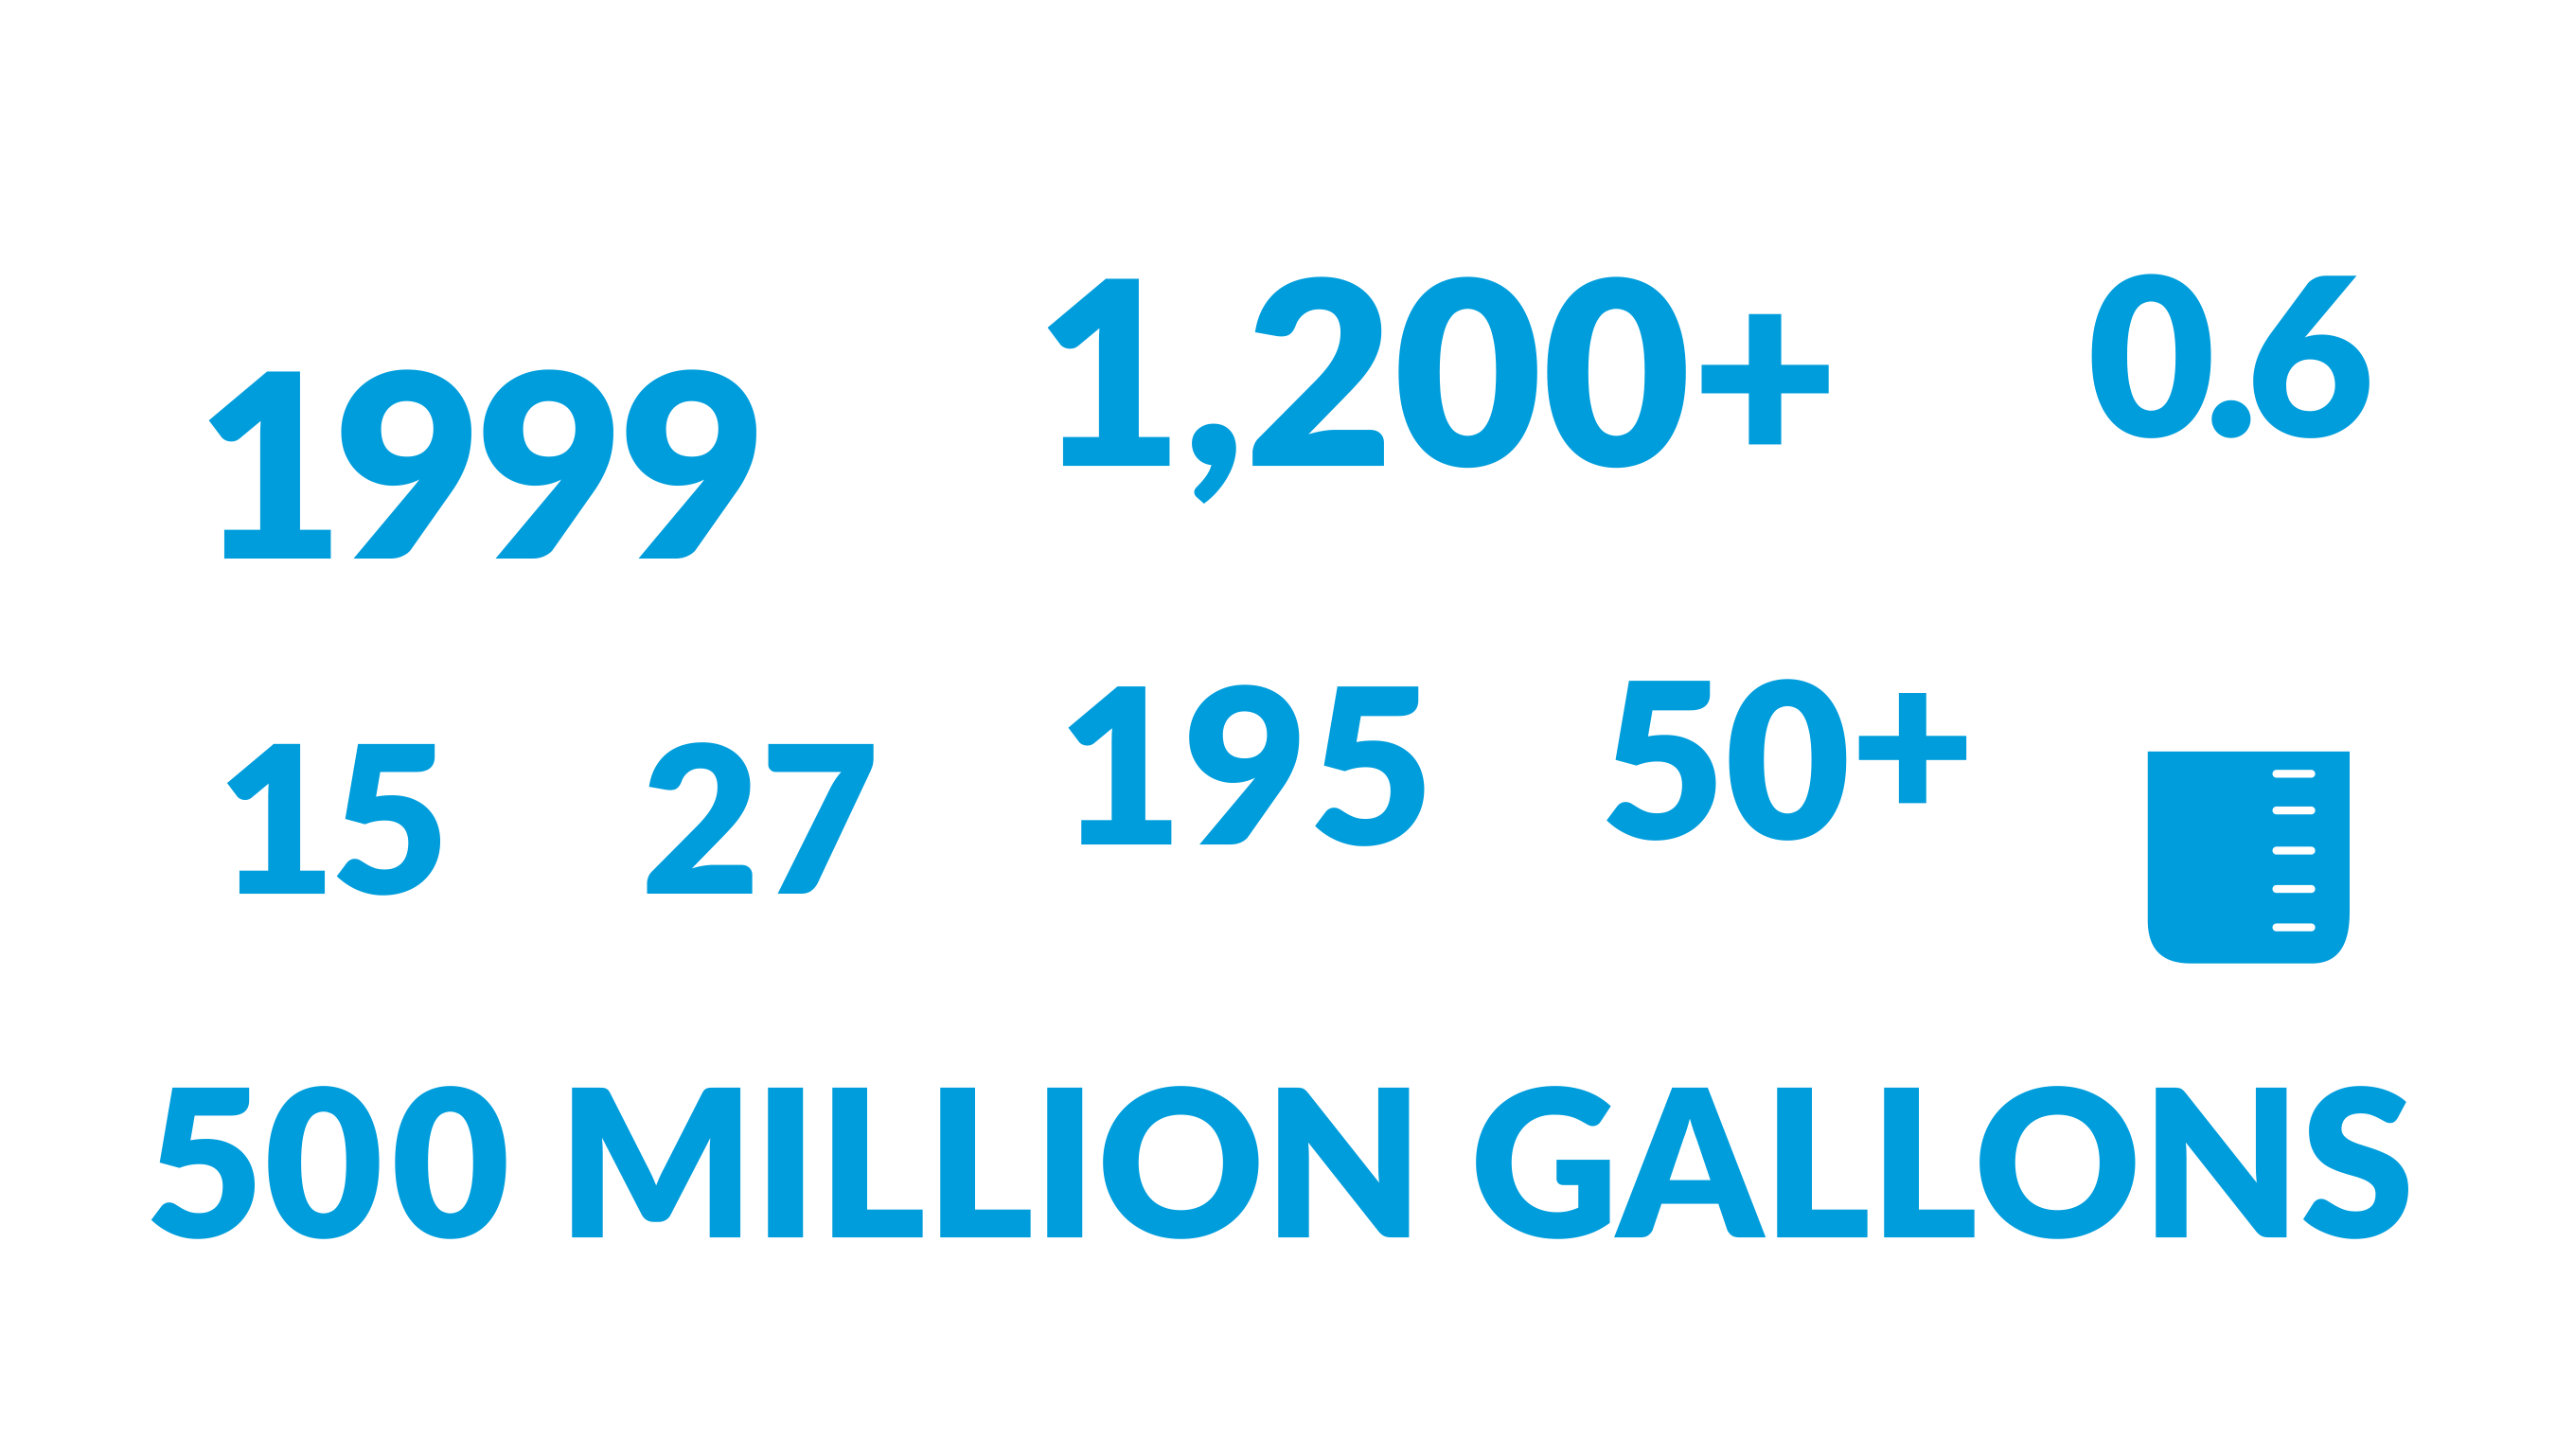 WaterTectonics QuickFacts: 1,200+ completed projects; founded in 1999; operated in 15 counties & 27 states; 0.6 EMR; 195 permanent installations; 50+ rental assets; 500 Million Gallons of Water Treated Annually